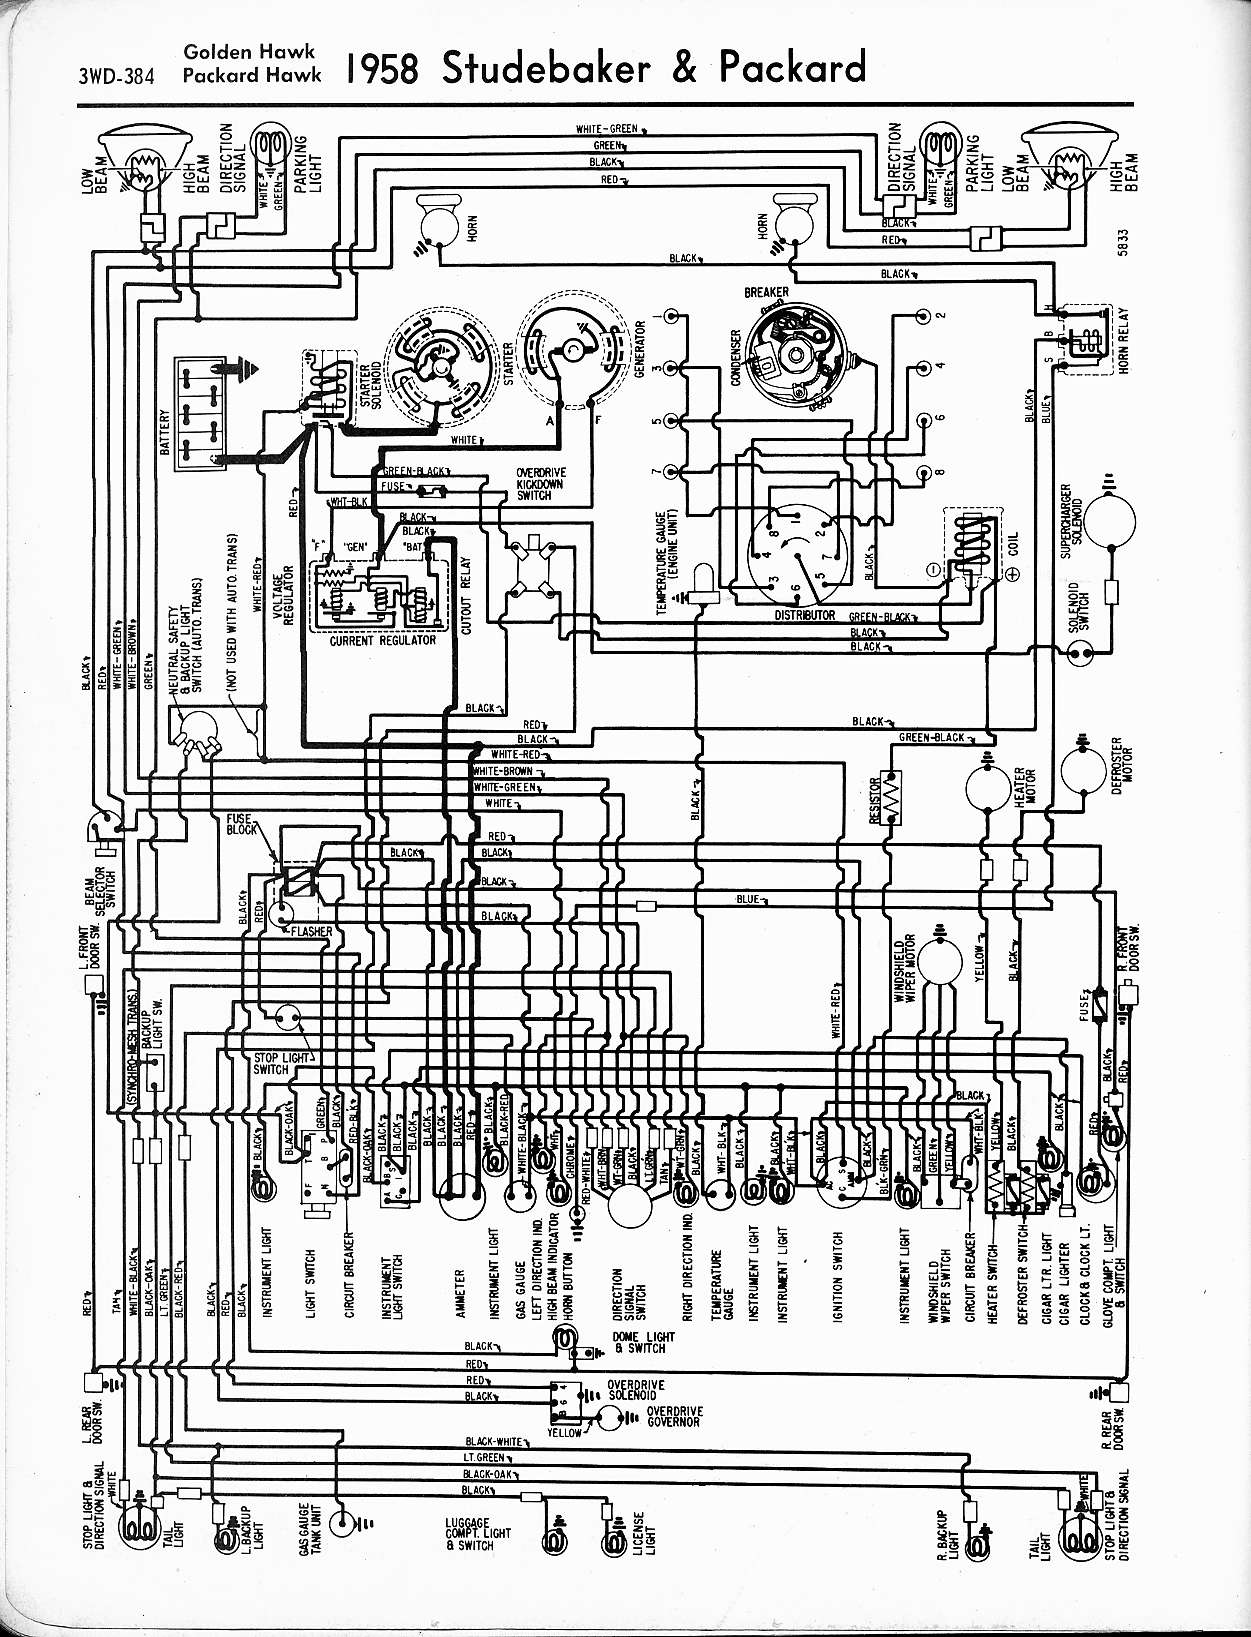 studebaker wiring diagrams the old car manual project rh oldcarmanualproject com 2002 Cadillac DeVille Wiring-Diagram 1962 cadillac deville wiring diagram